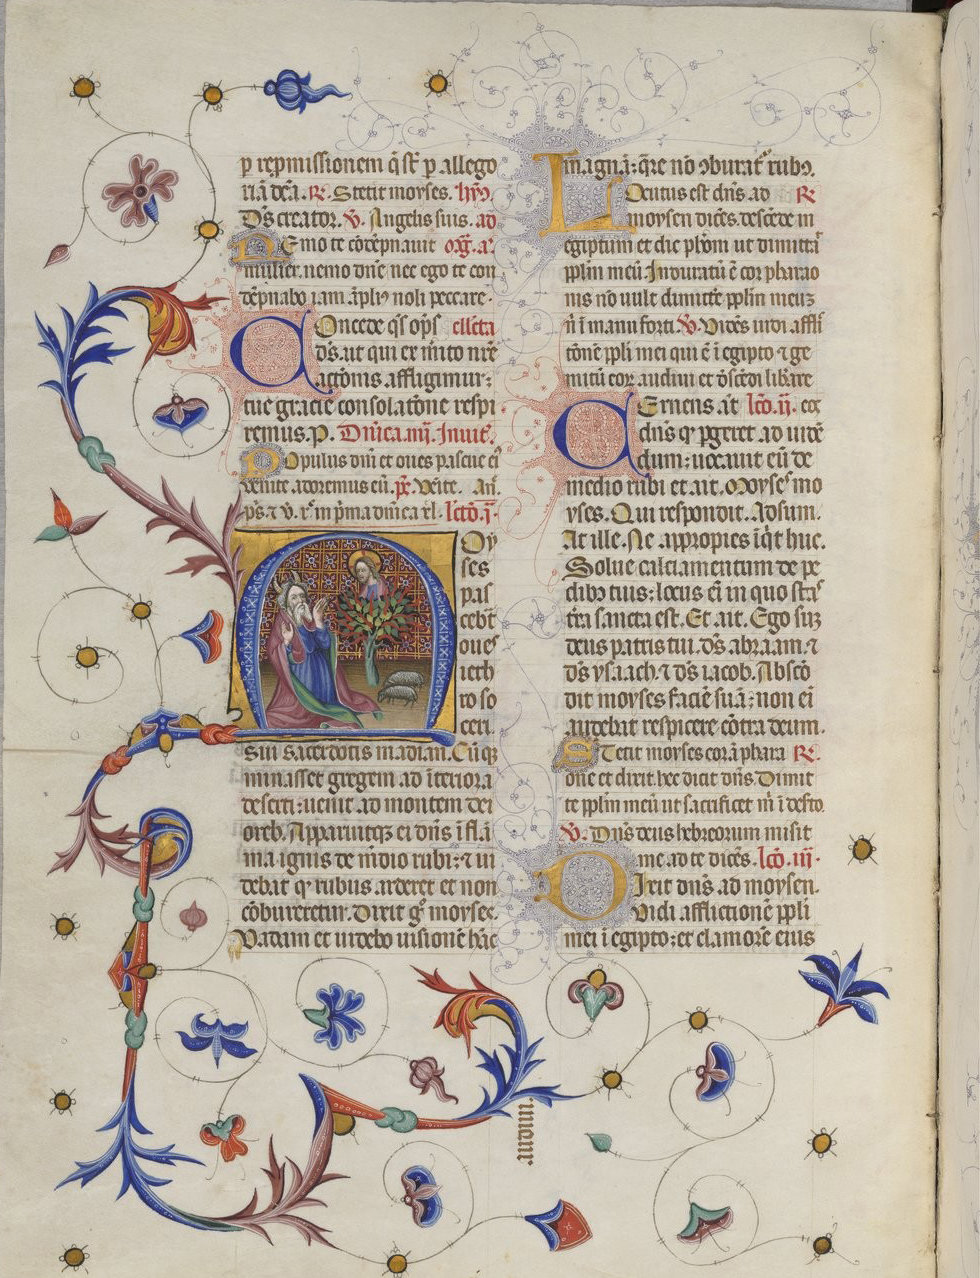 The Breviary of Martin of Aragon f398, Catalonia, between 1398 and 1410 and around 1420-1430, French National Library, Manuscripts, Rothschild 2529 Parchment, 454 ff., 350 x 252 mm. , In Copyright